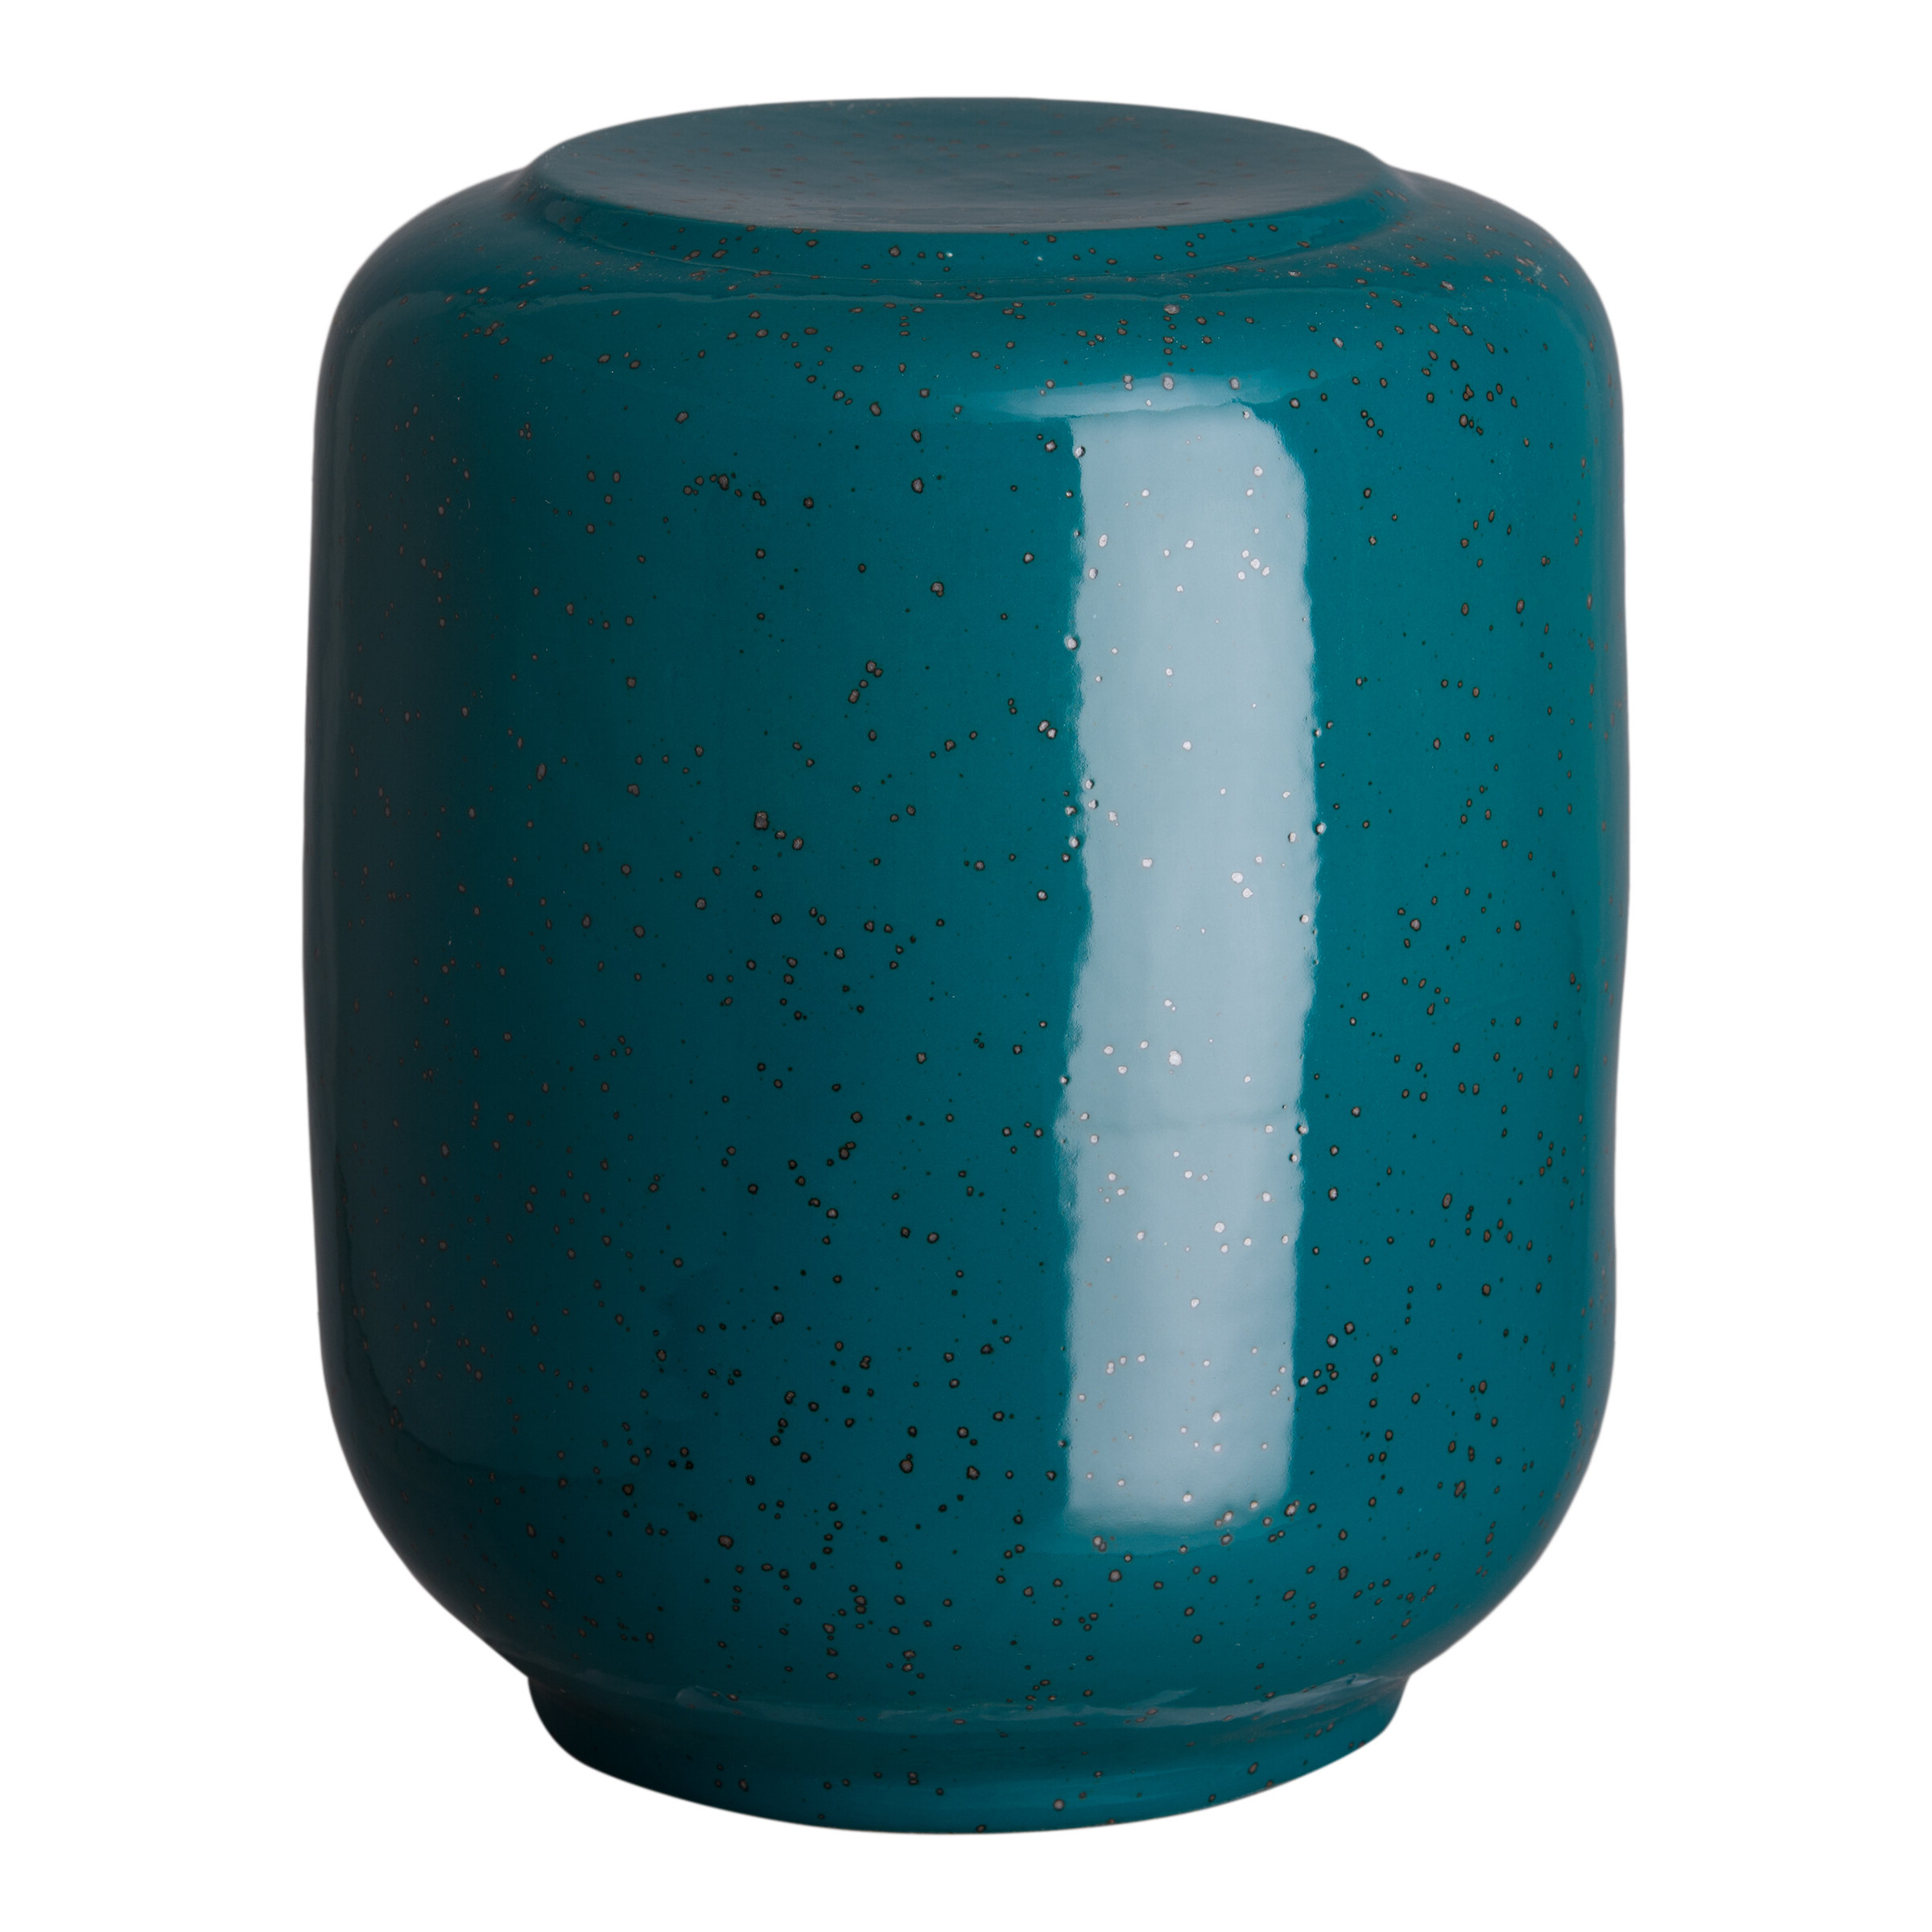 Karinna Ceramic Garden Stool Intended For Most Recently Released Karlov Ceramic Garden Stools (View 5 of 30)